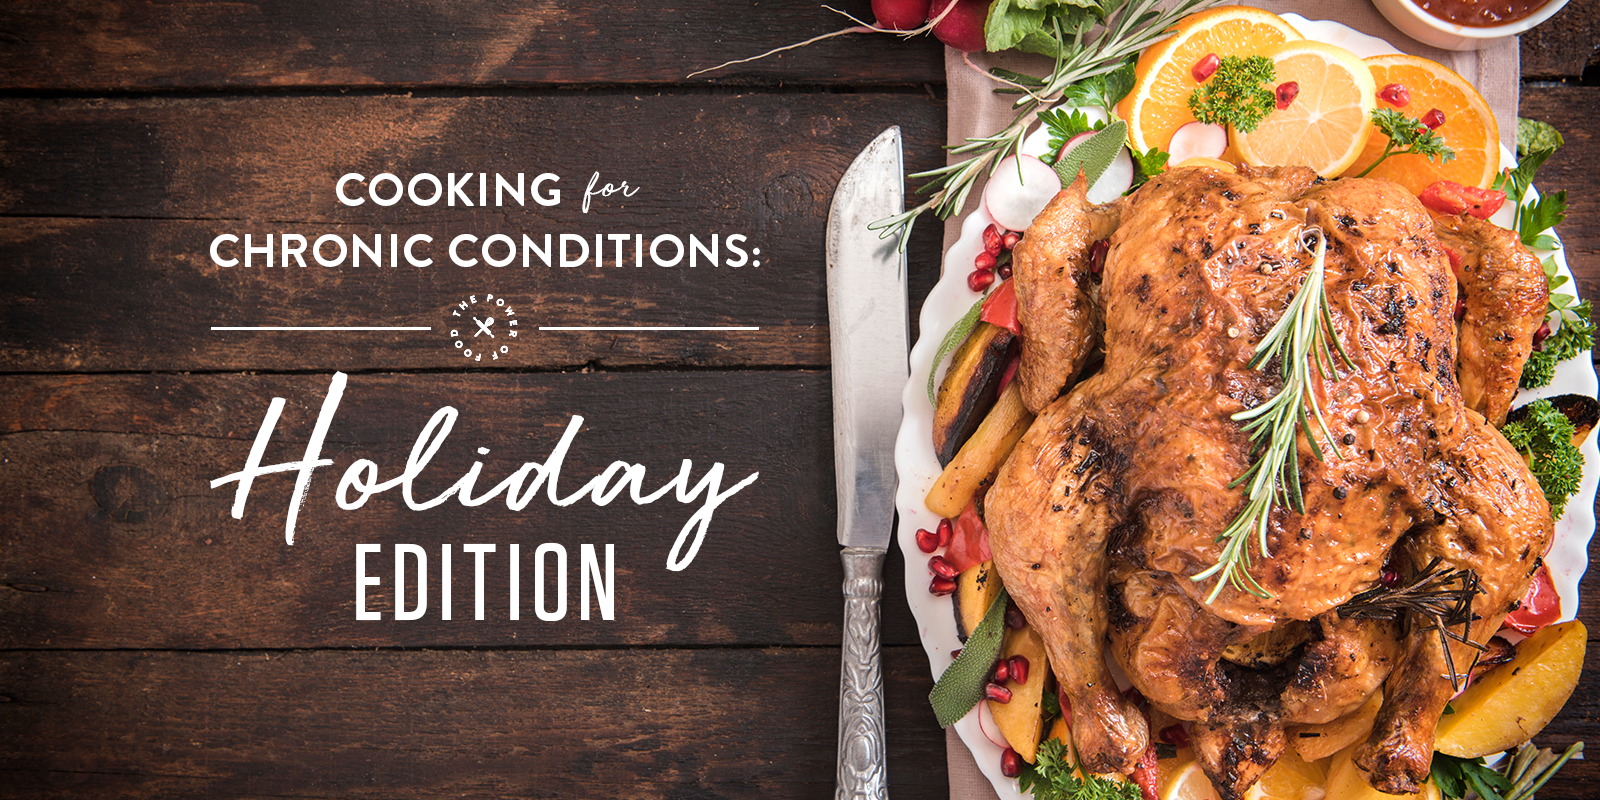 Morrison Healthcare Clinical Dietitian Brittany Ferguson gives advice for Holiday cooking for chronic conditions.